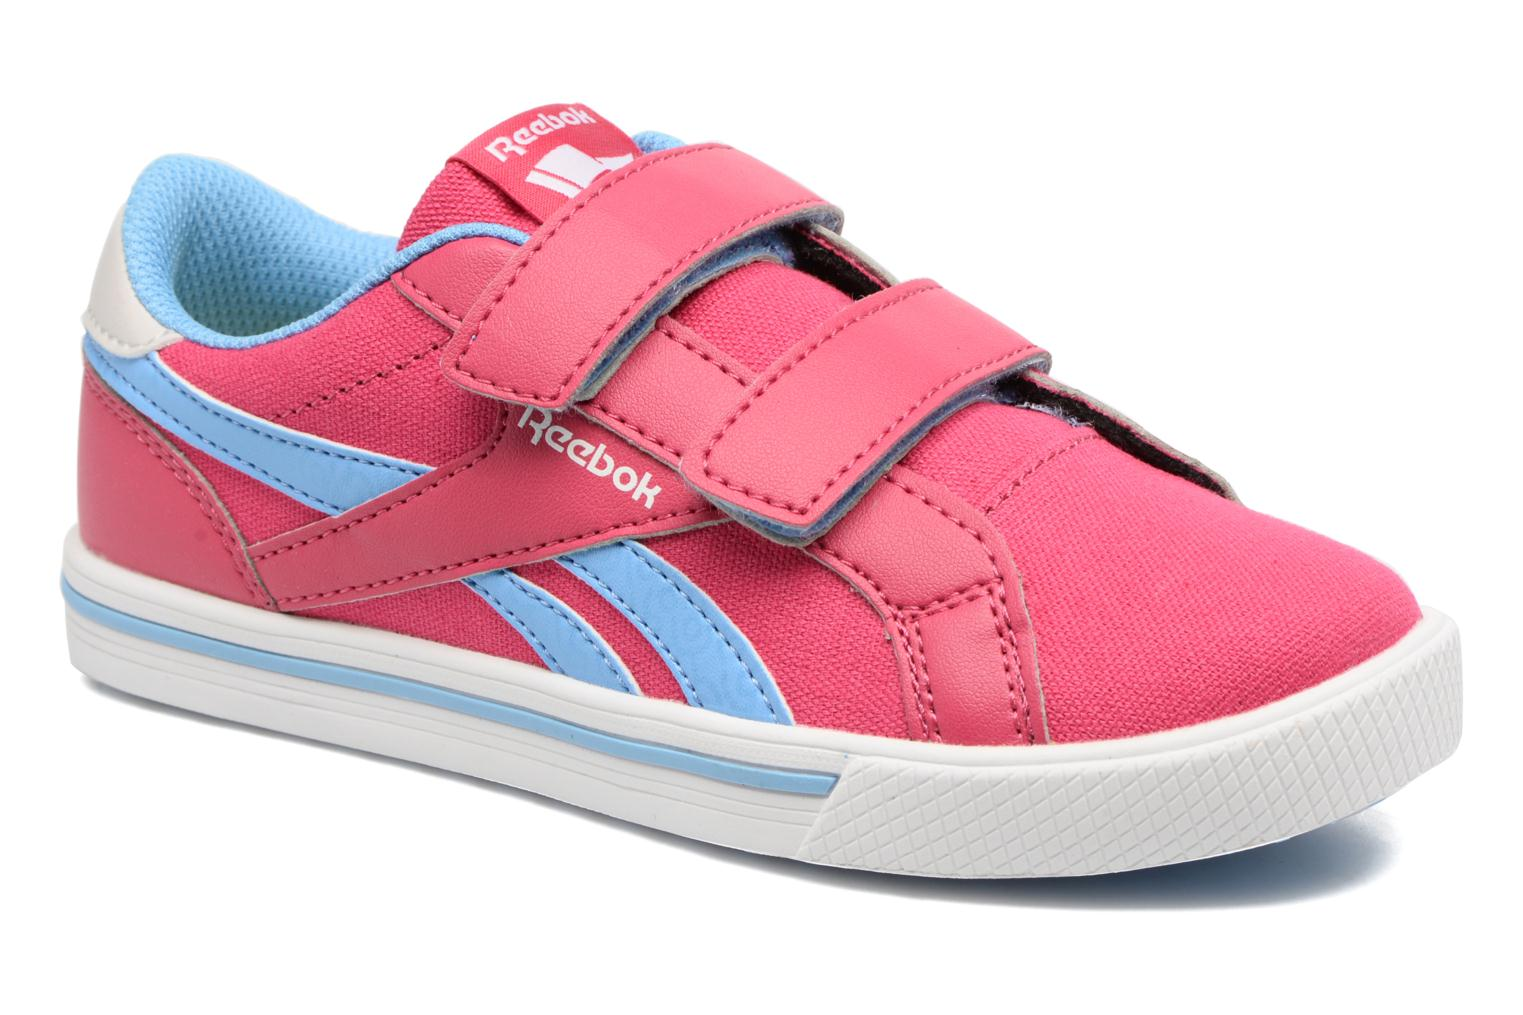 Reebok Royal Comp A Pink Craze/Sky Blue/Skull Grey/White